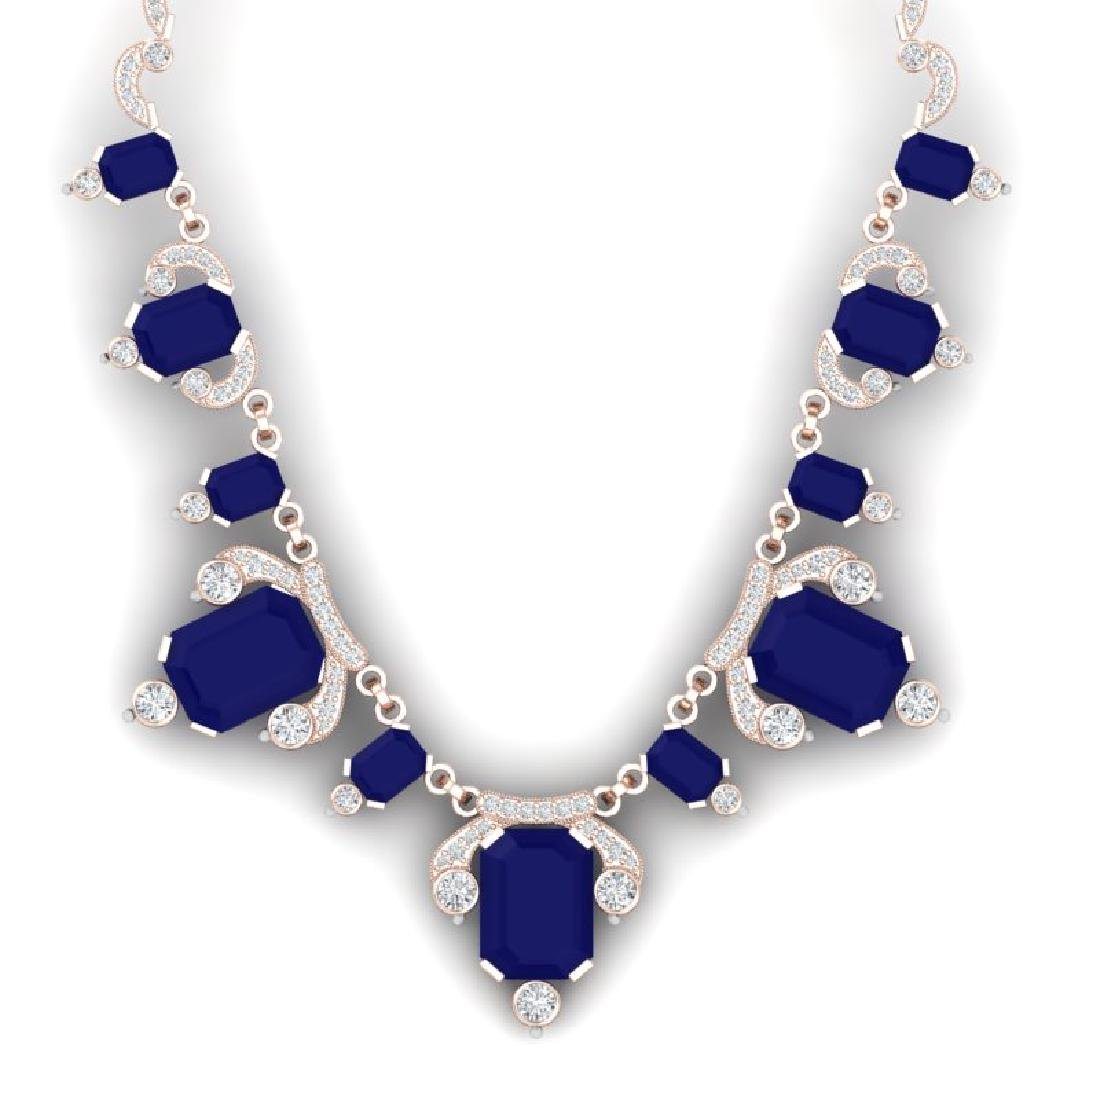 75.21 CTW Royalty Sapphire & VS Diamond Necklace 18K